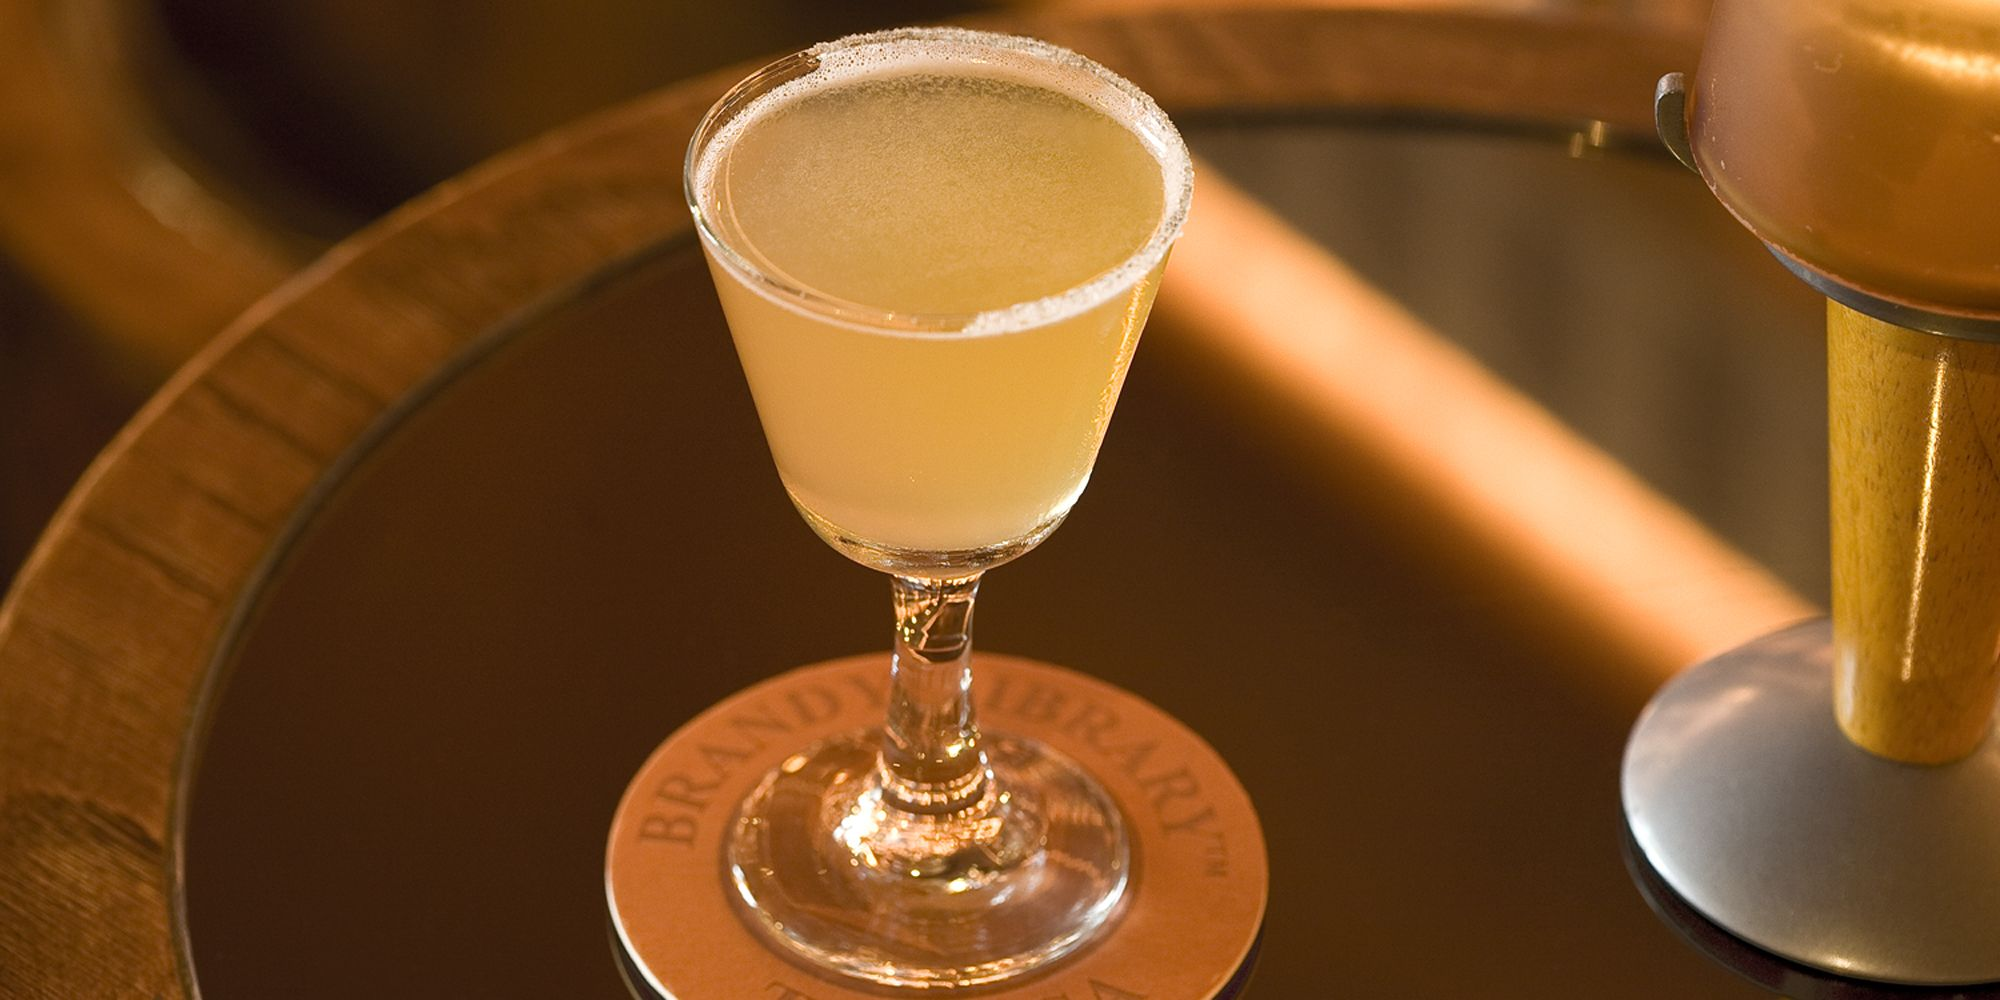 Best Sidecar Recipe – How to Make a Sidecar Drink